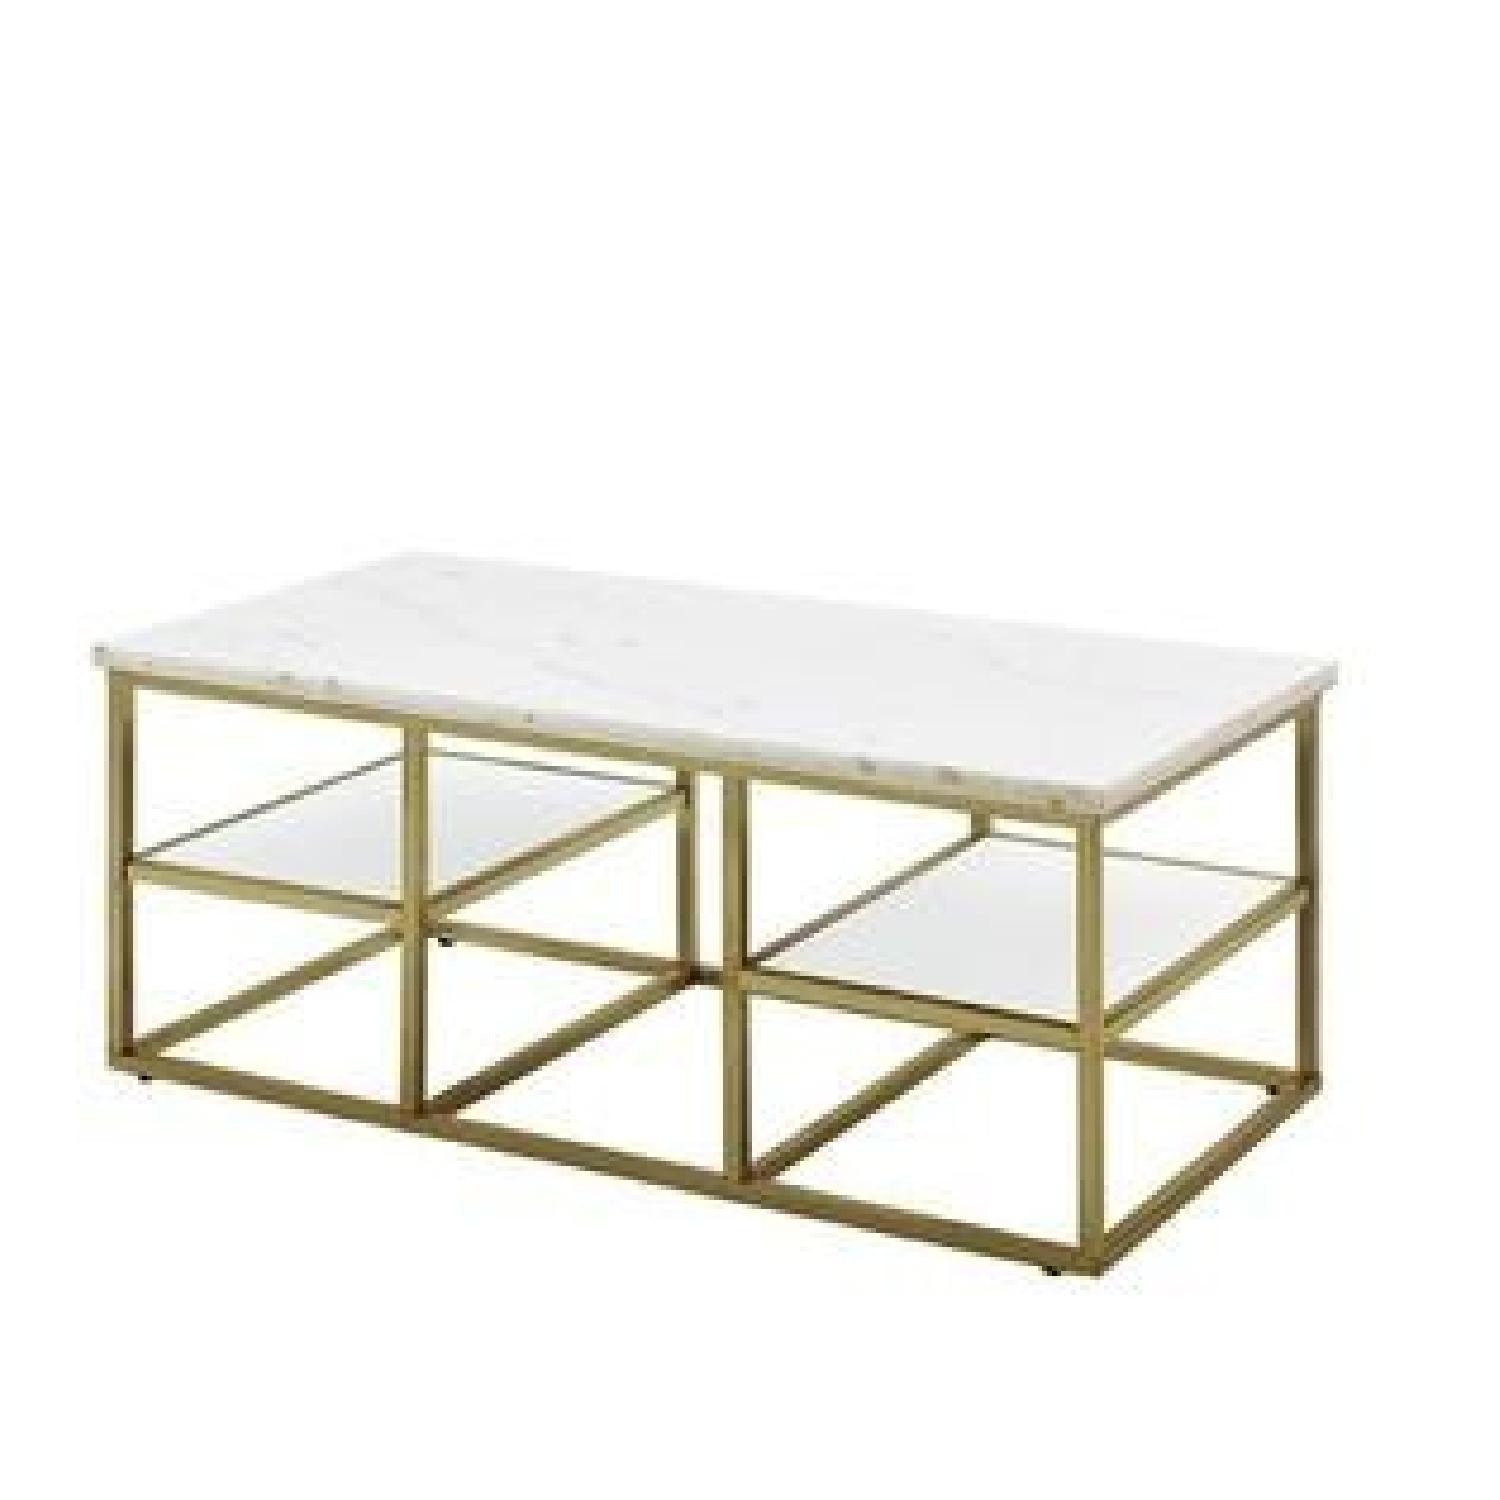 Marble Top Coffee Table w/ Brass Legs - image-0